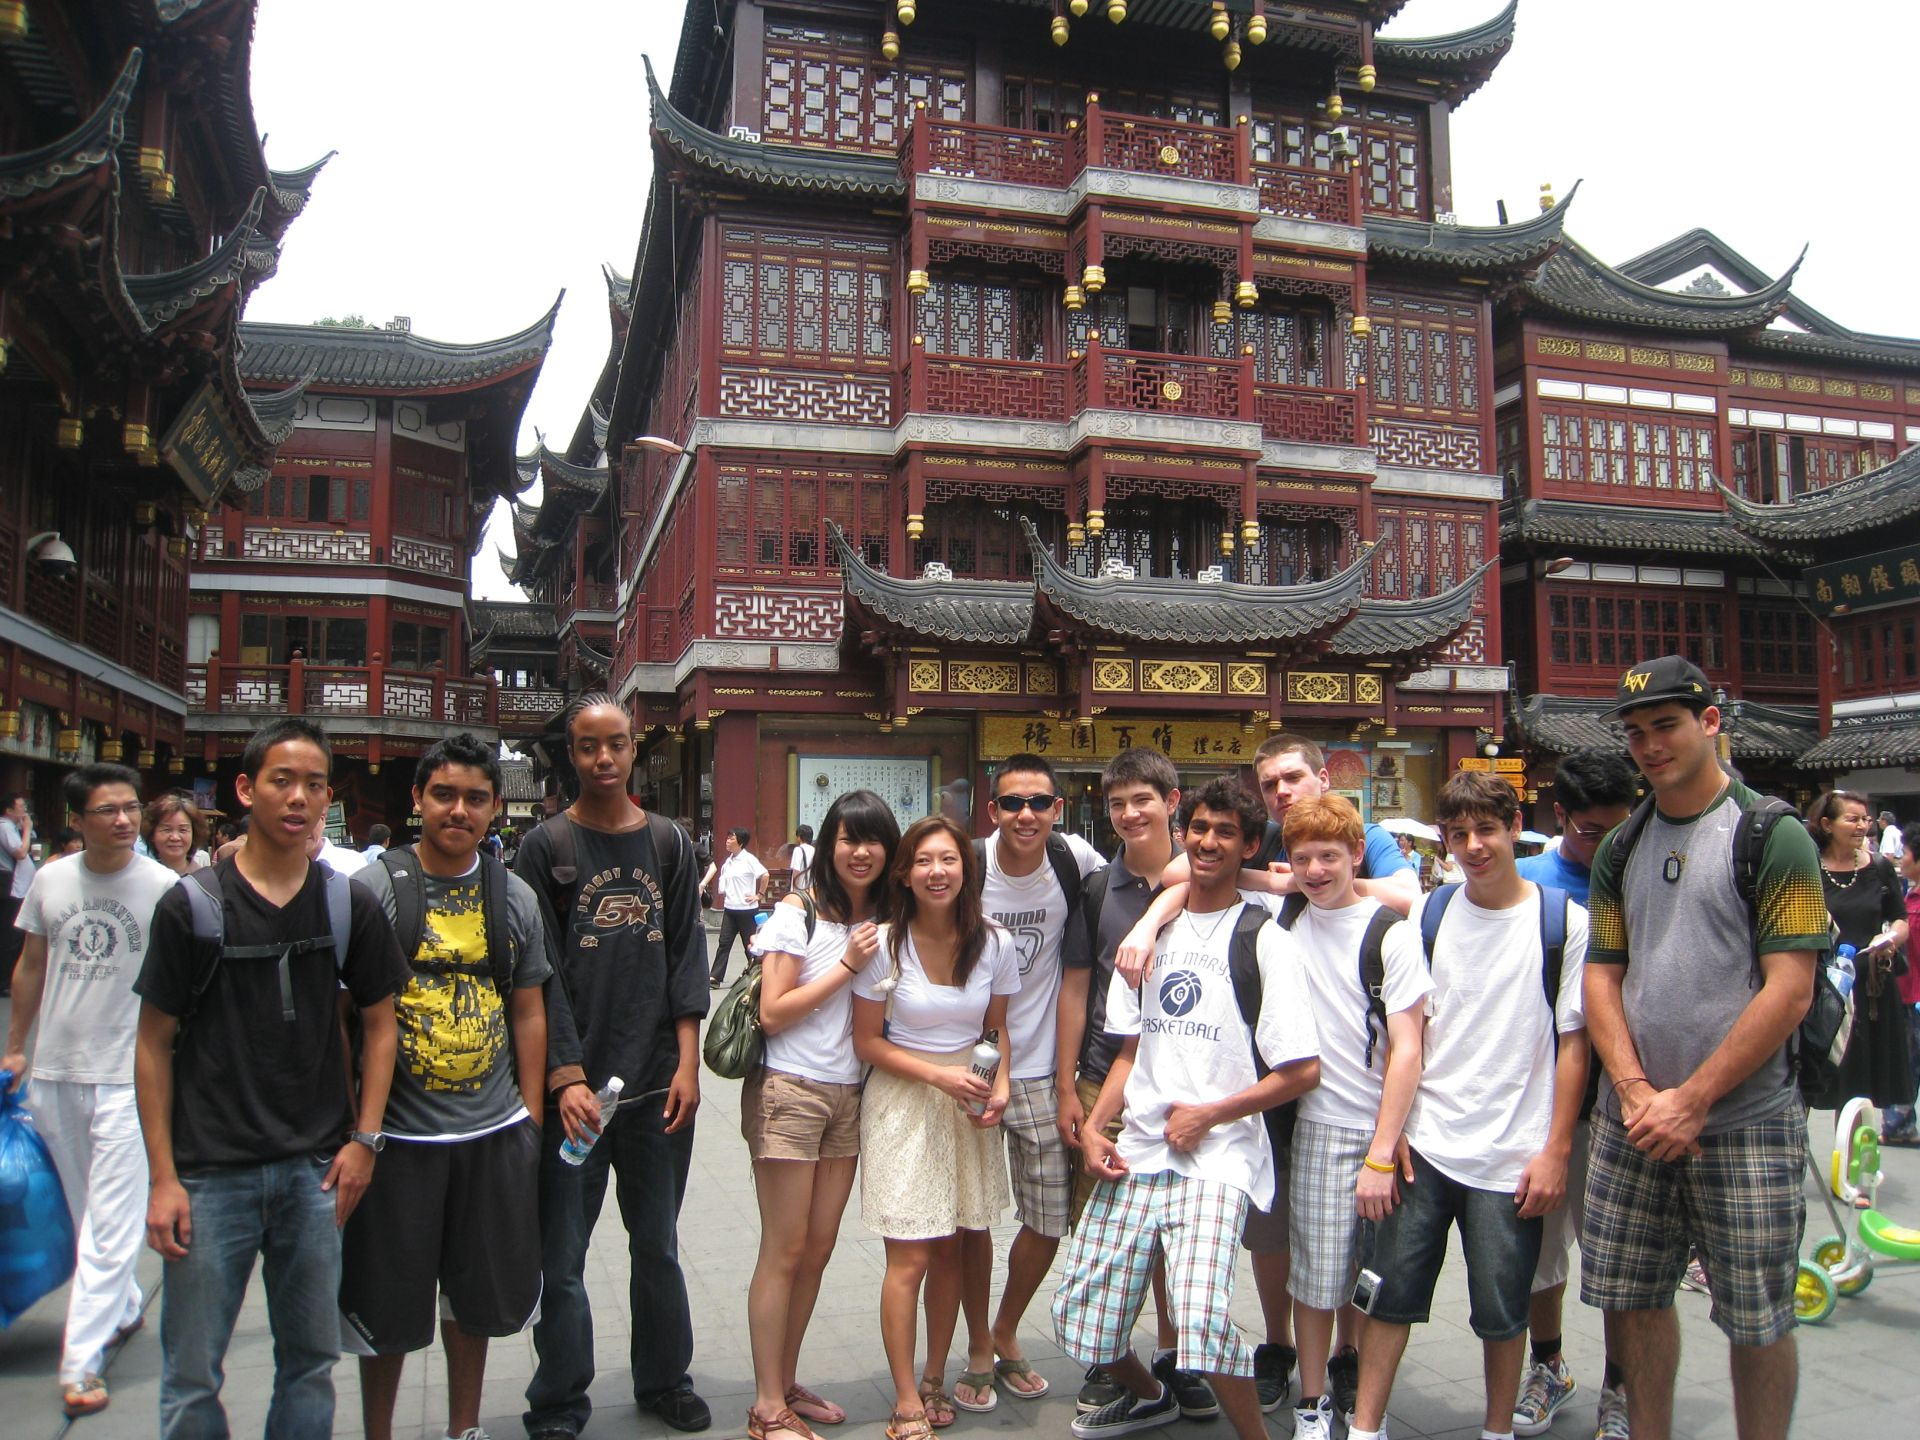 In June 2009, 13 students spent 18 days in China, where they visited major cities like Shanghai, Xian, and Beijing with various language training activities, people interactions, cultural sites visits, cultural activities, and service learning and community services.